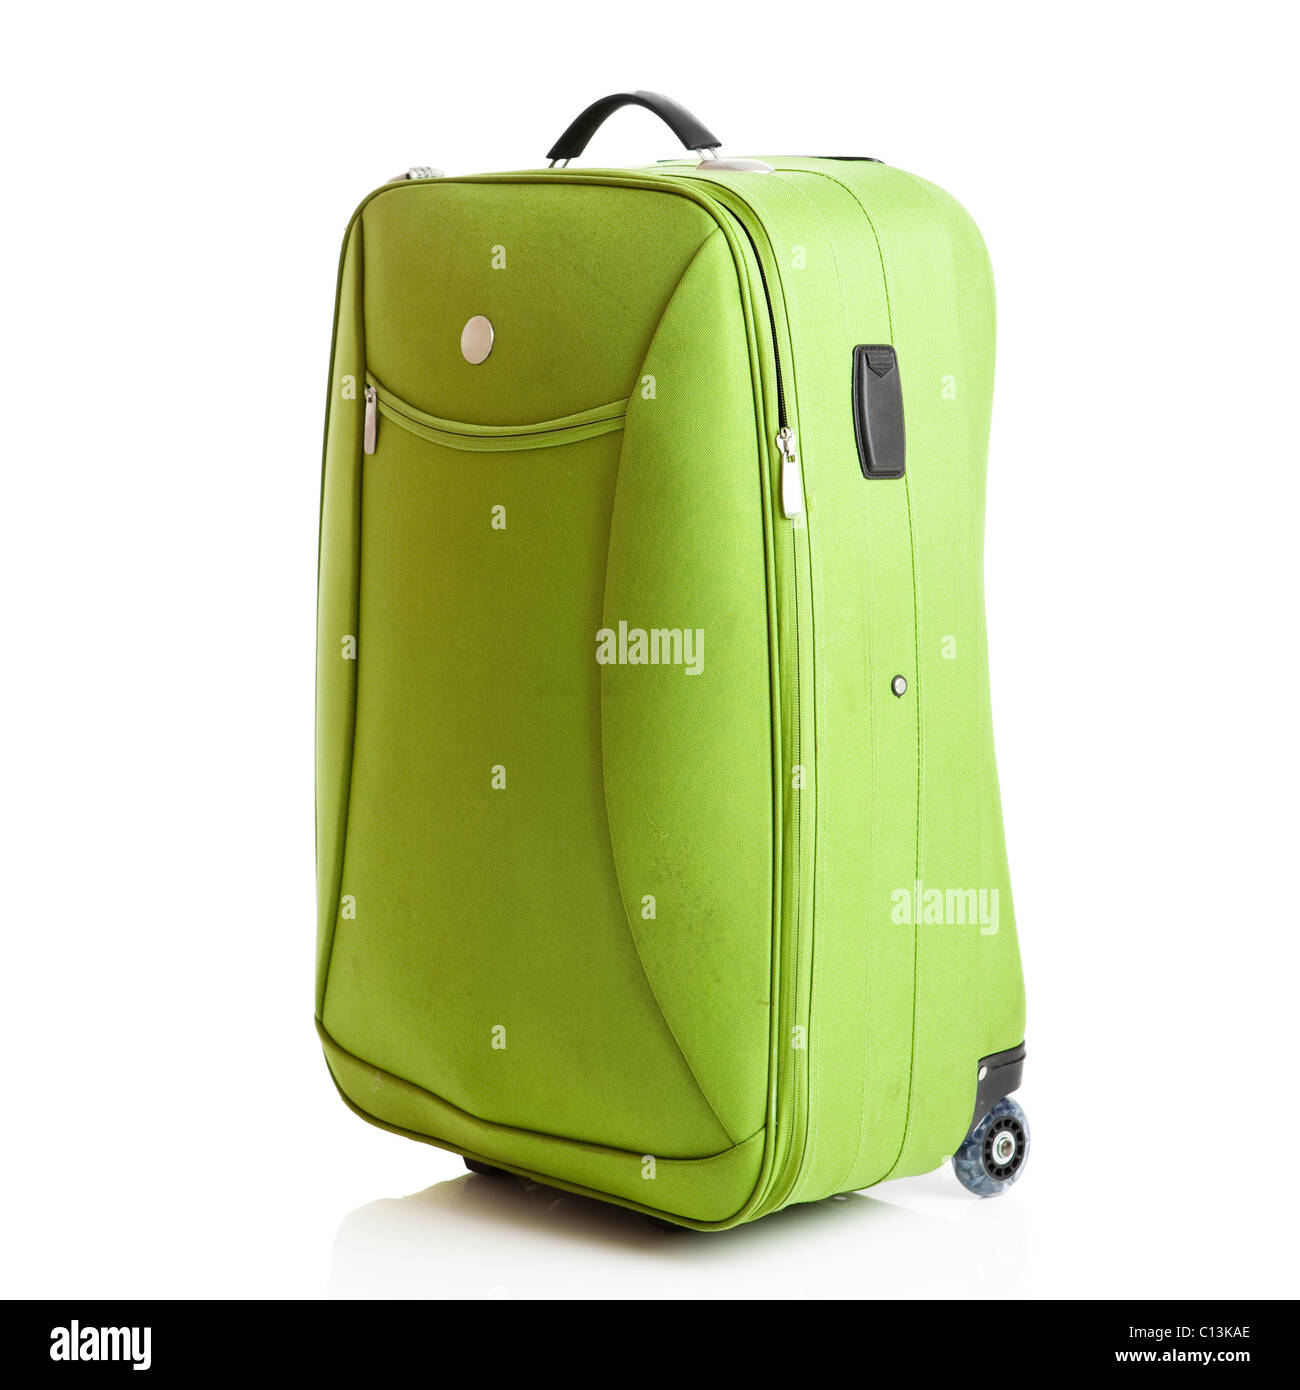 Green suitcase isolated over a white background - Stock Image